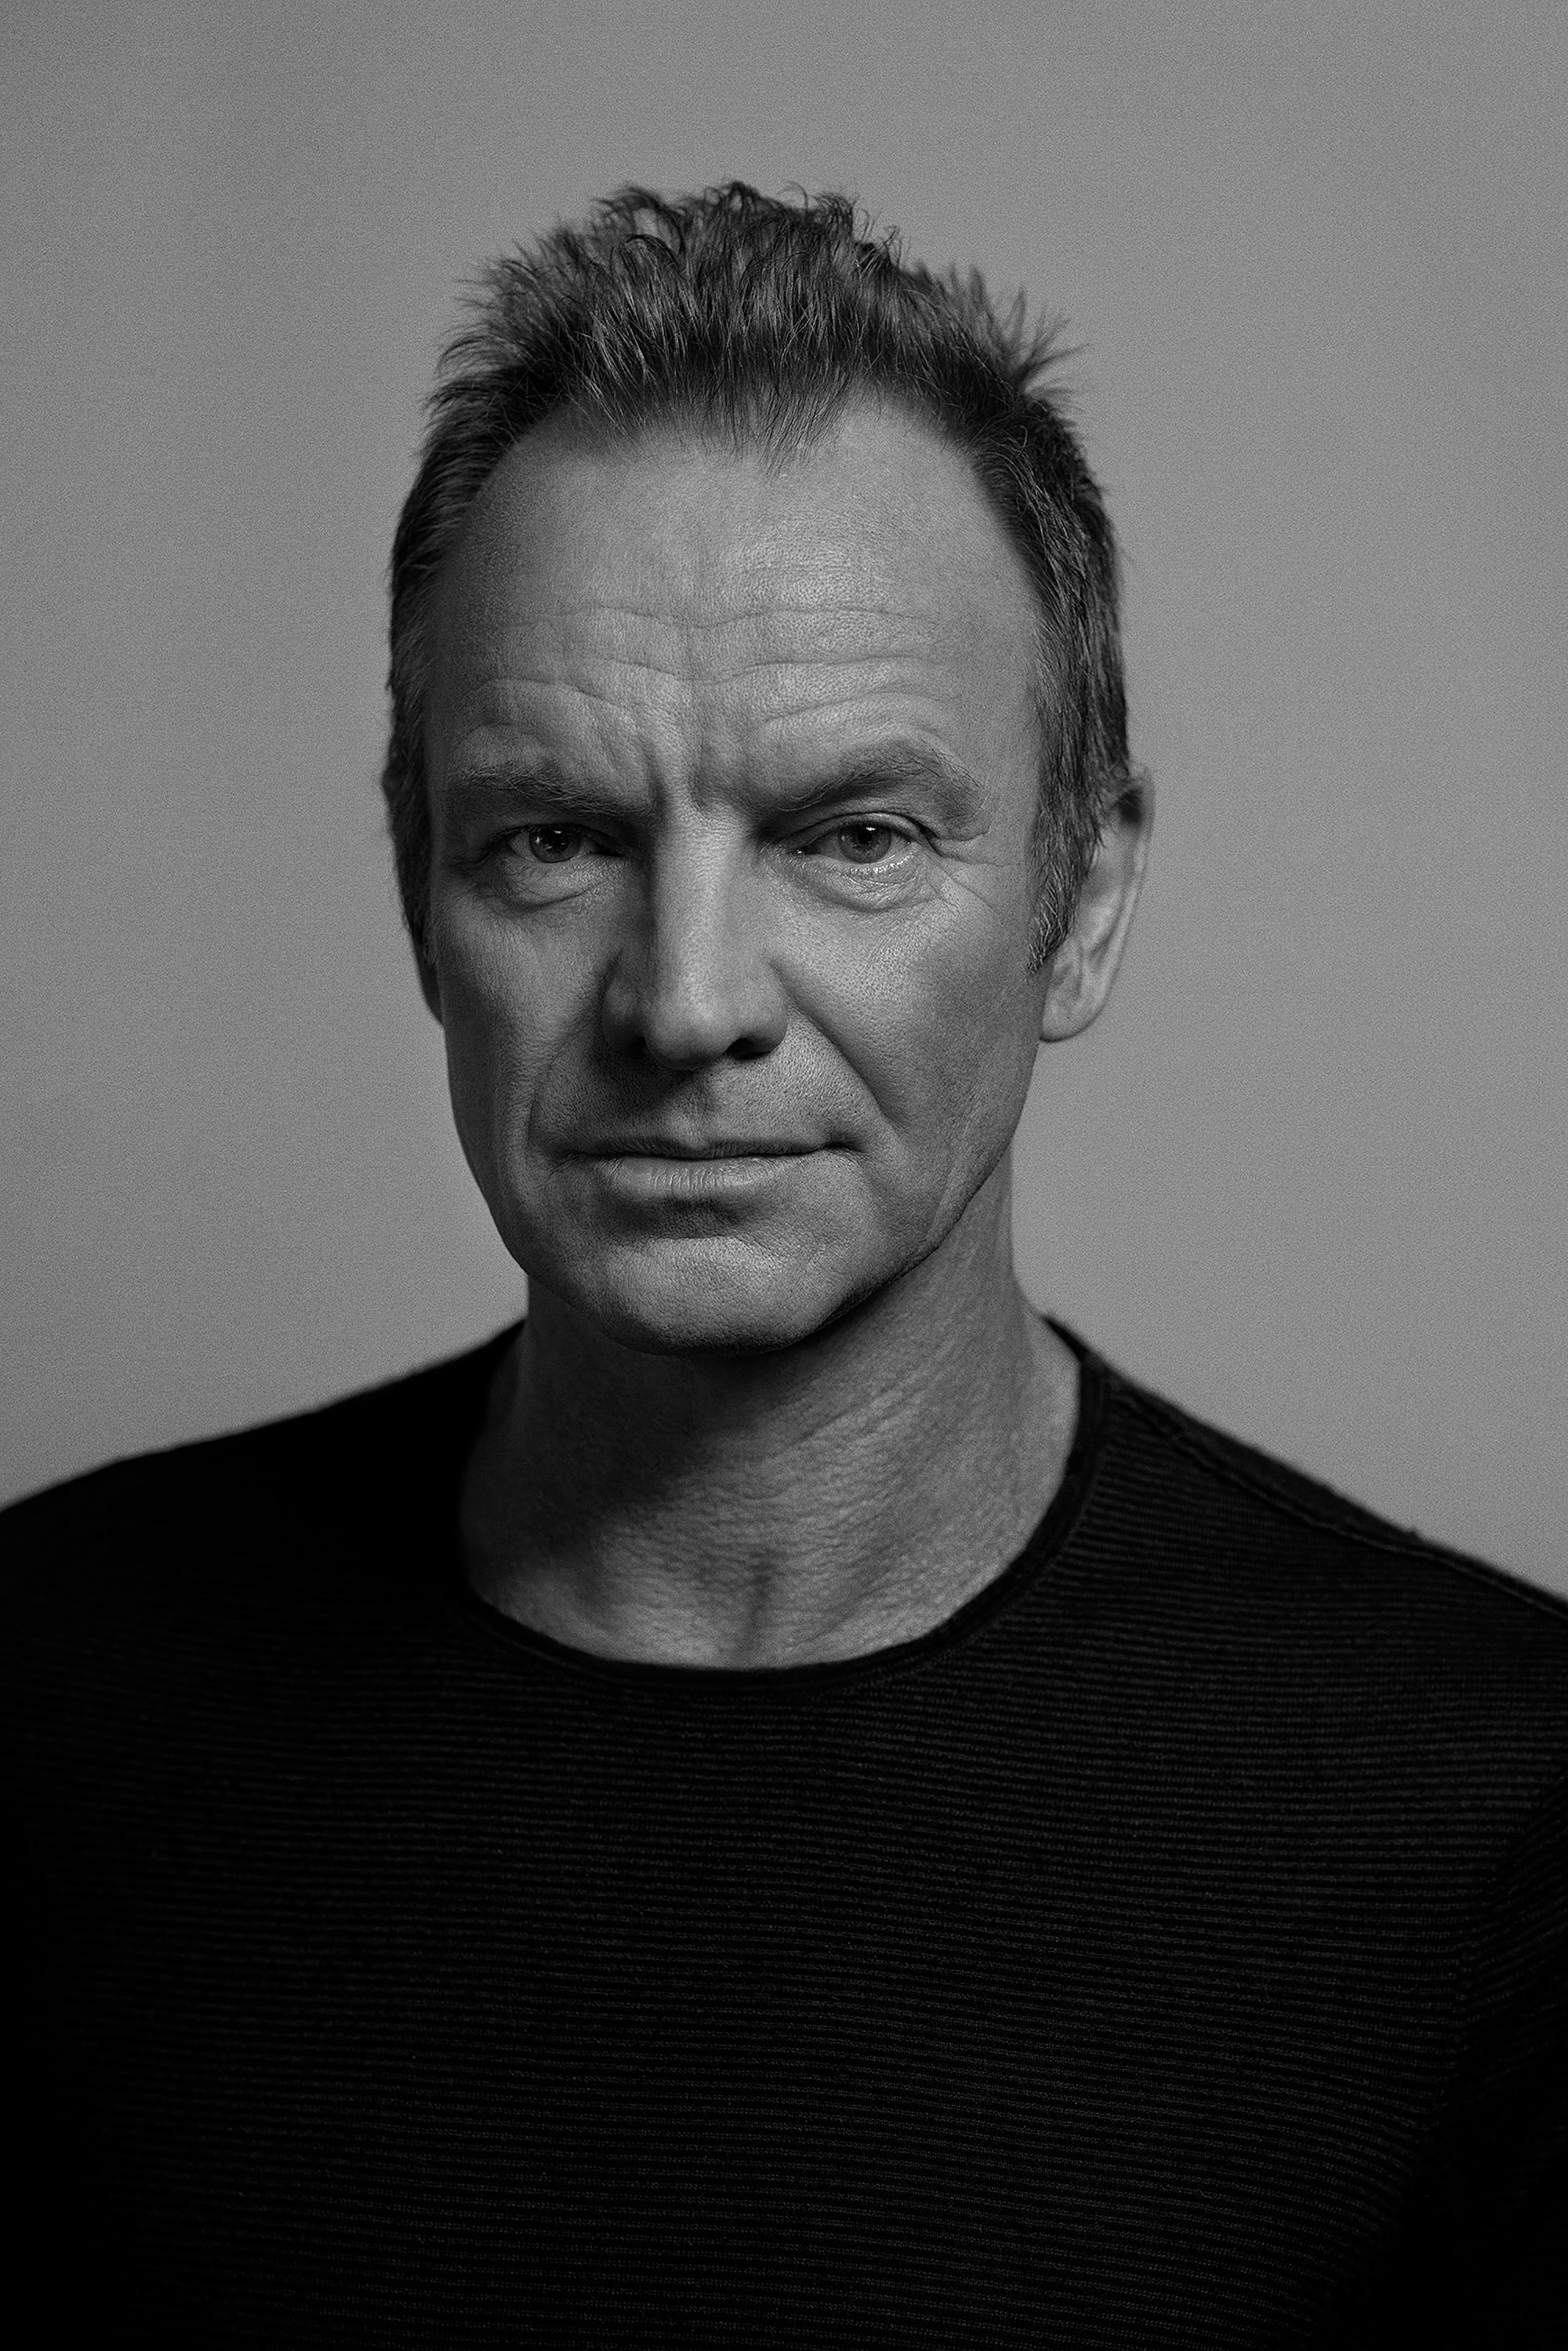 robert wolanski sony alpha 7RII portrait of sting